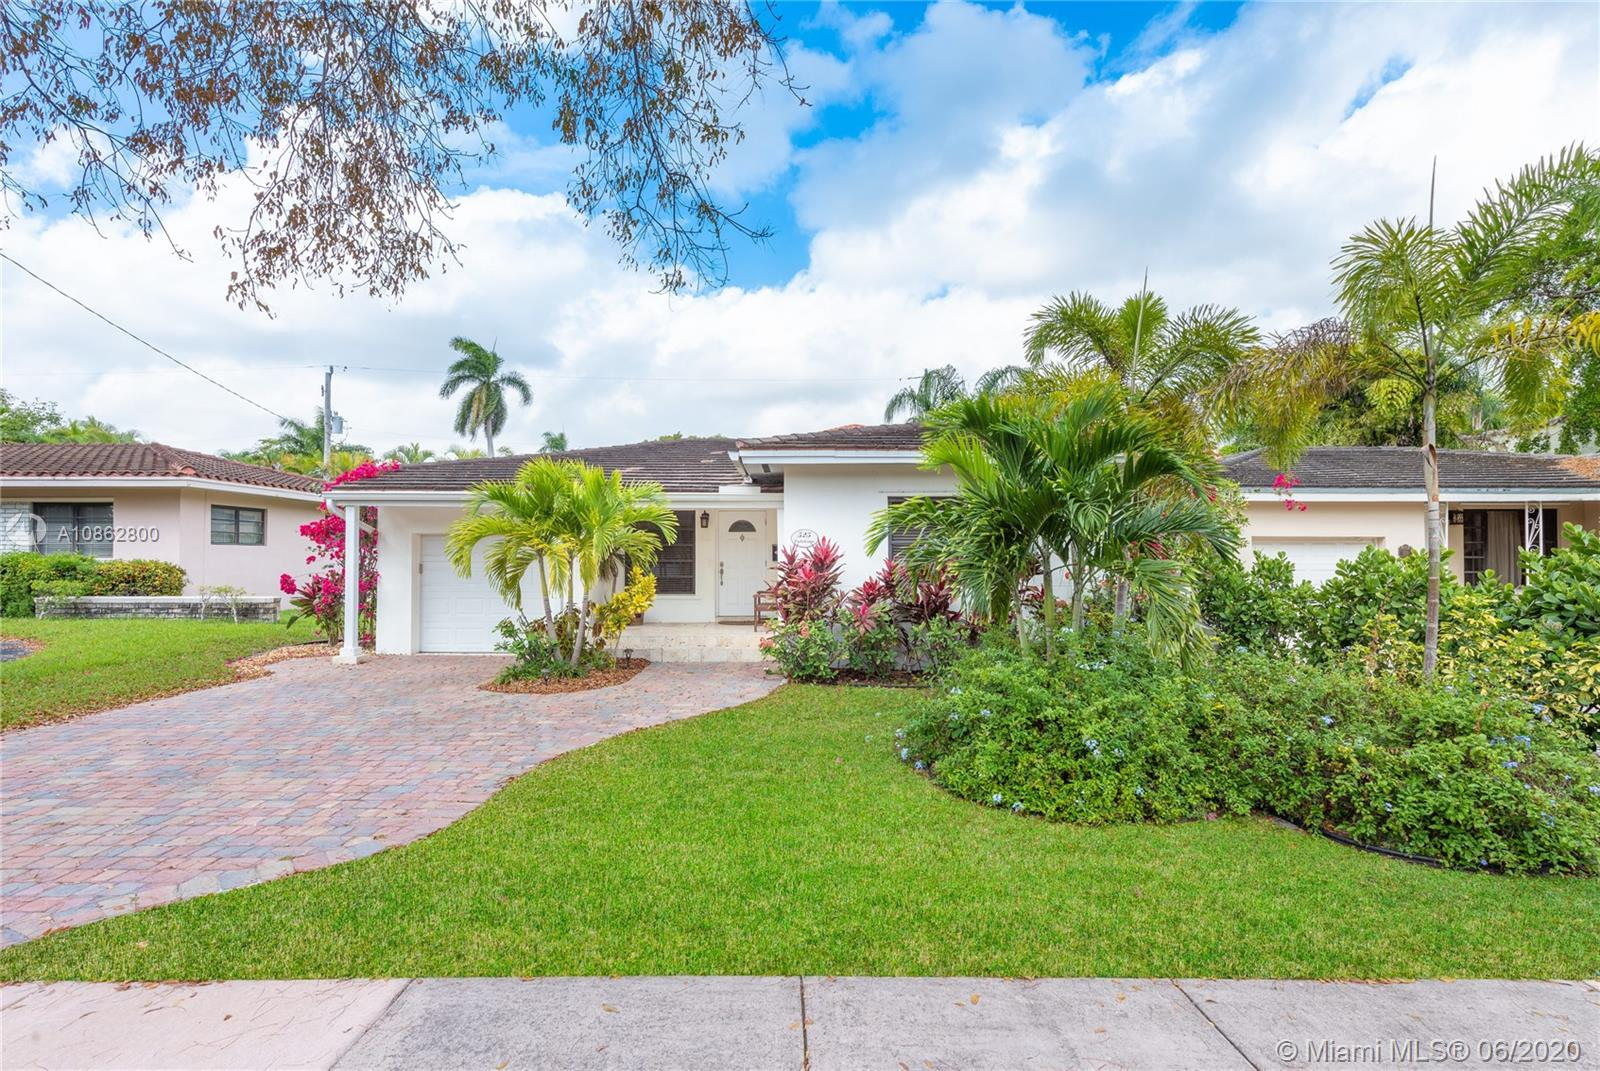 525 Catalonia Ave, Coral Gables in Miami-dade County County, FL 33134 Home for Sale